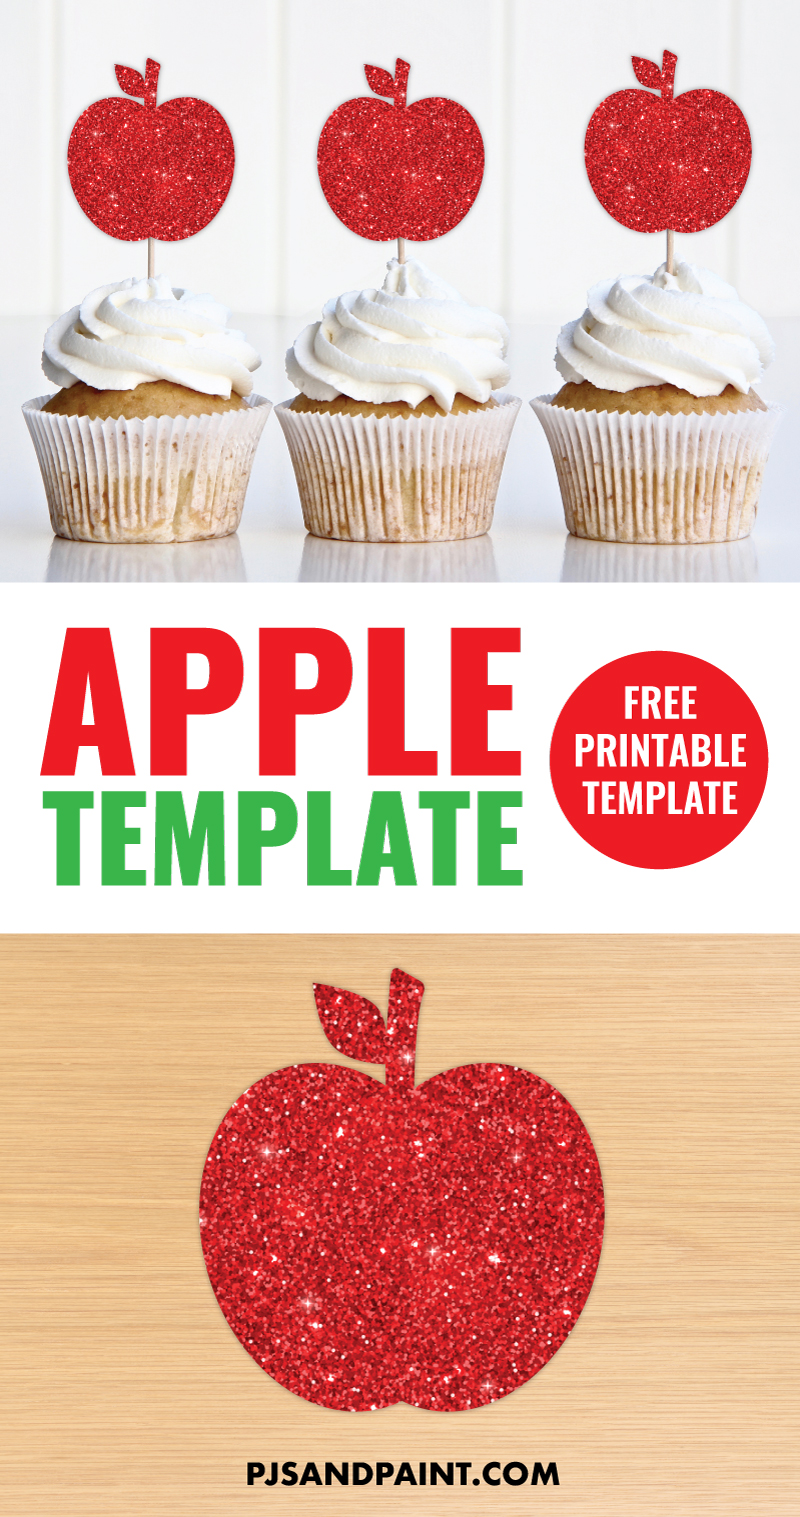 free printable apple template graphic